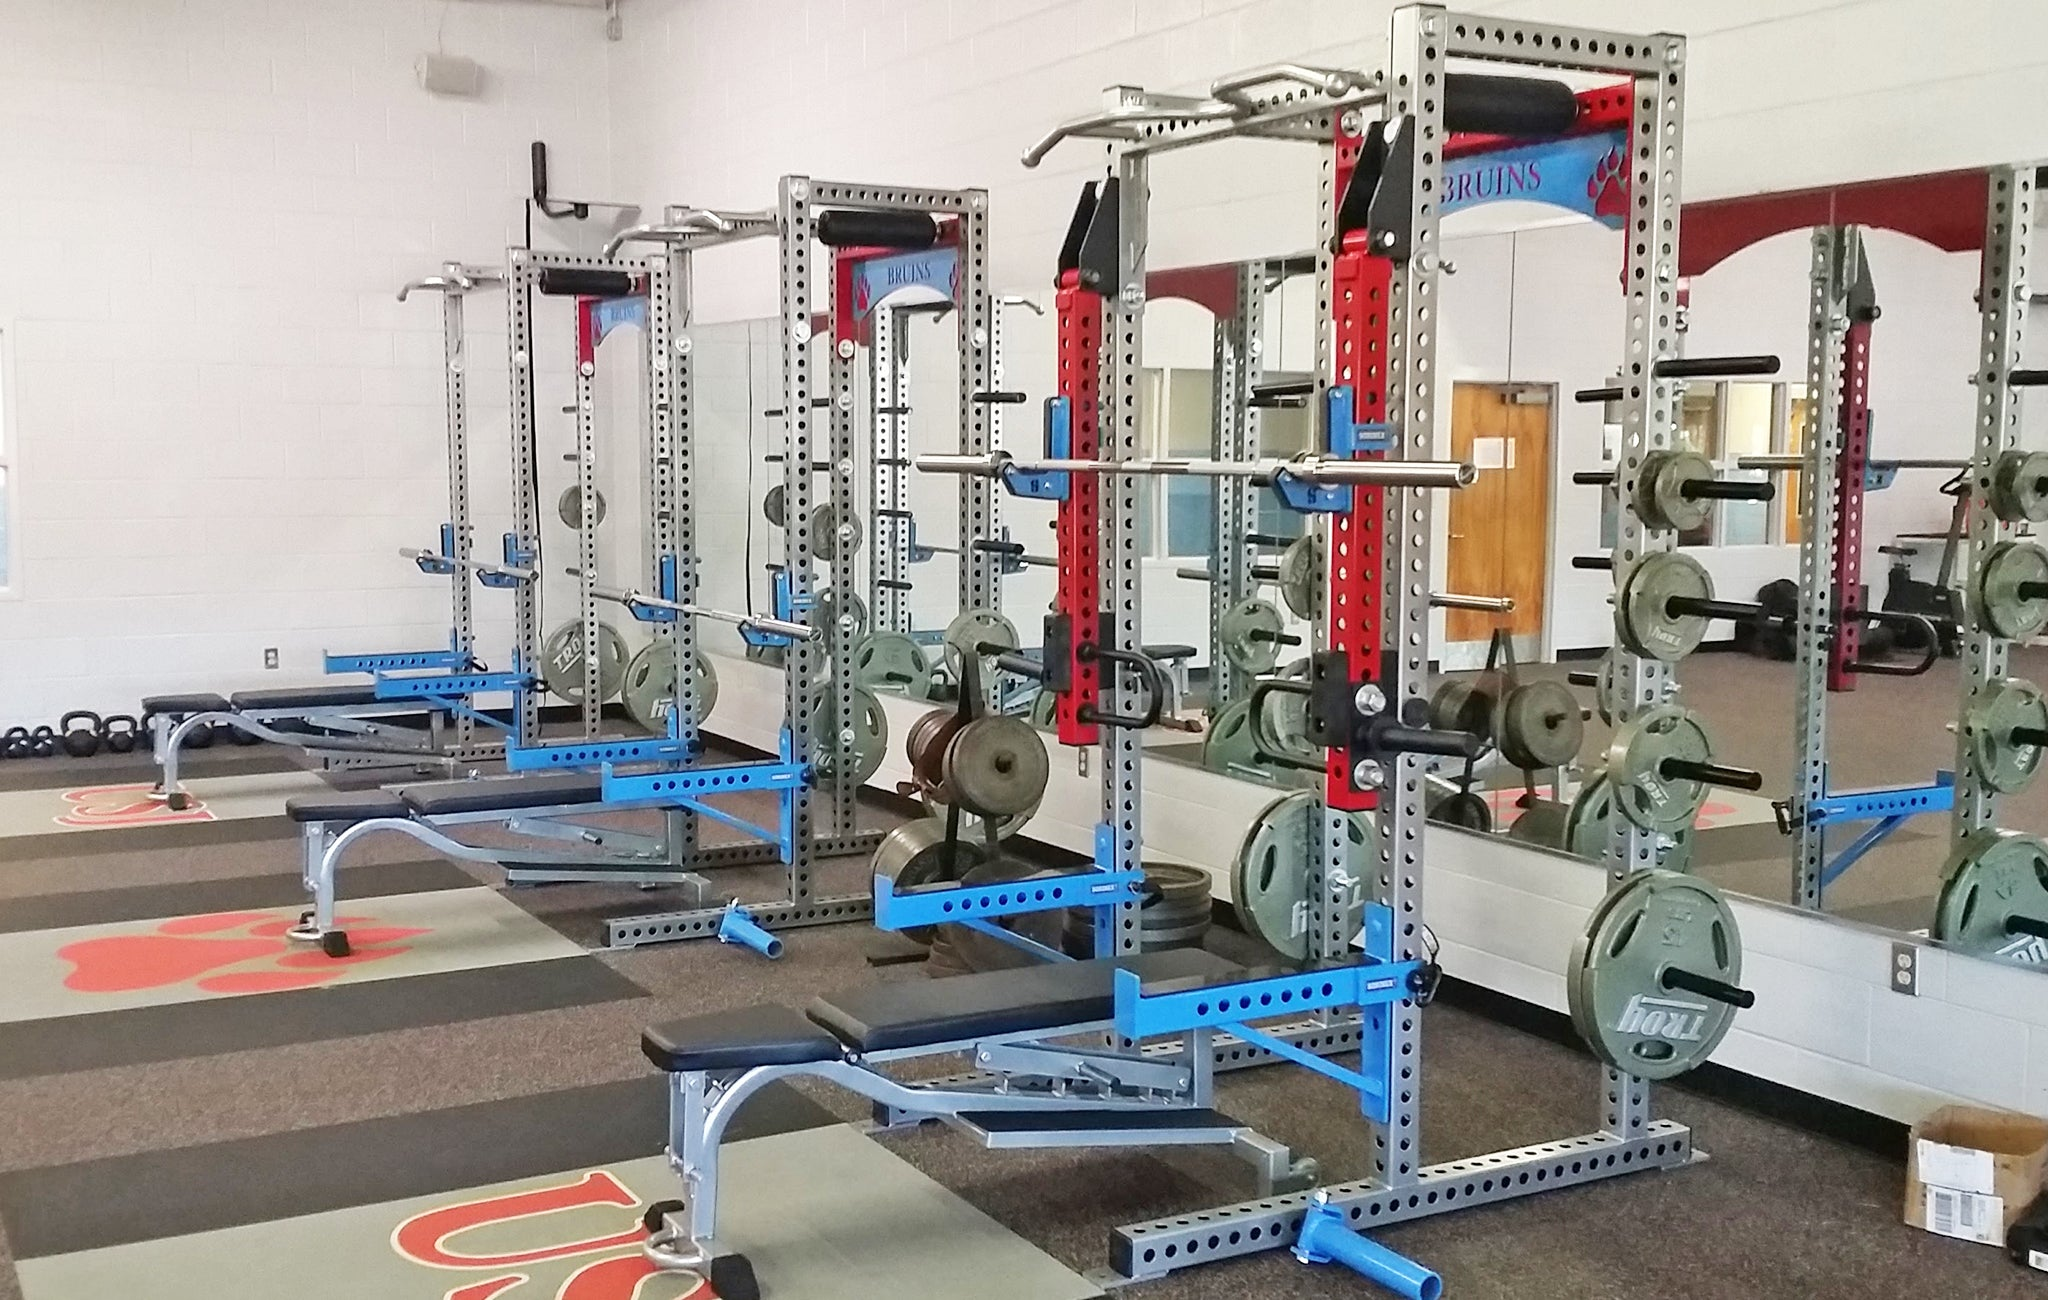 University School of Jackson Weight Room